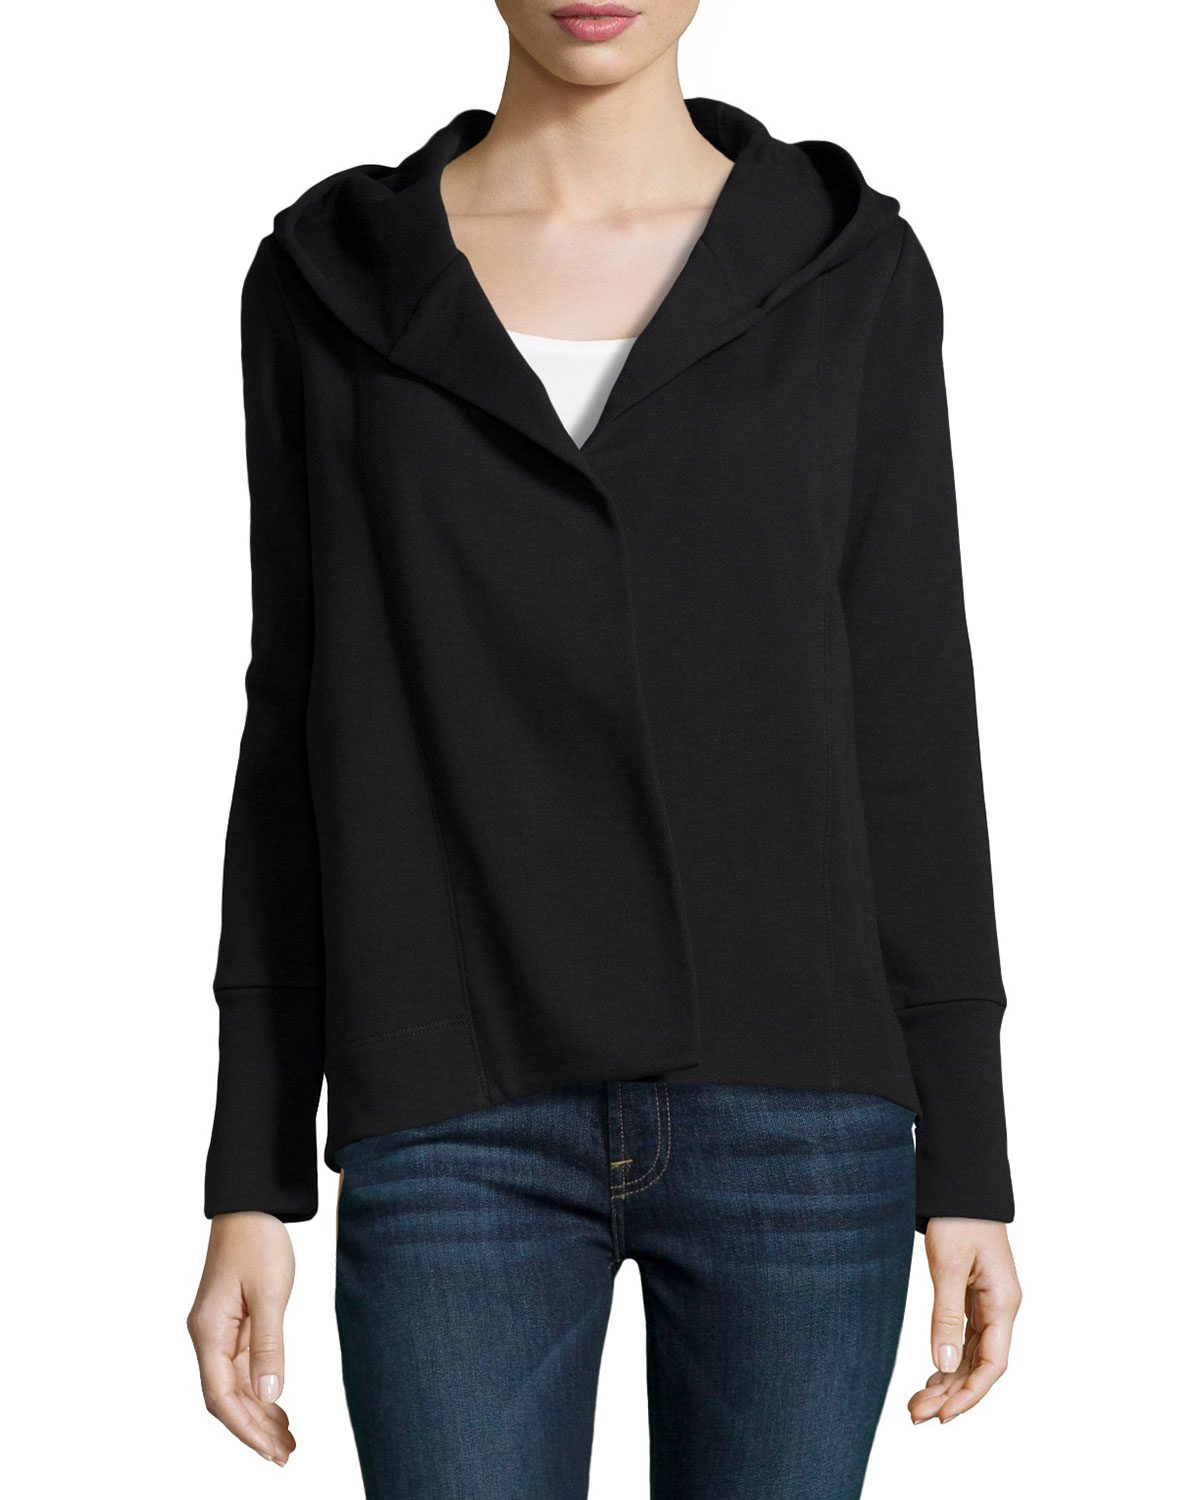 James perse Cotton-Blend Hooded Open Cardigan in Black | Lyst